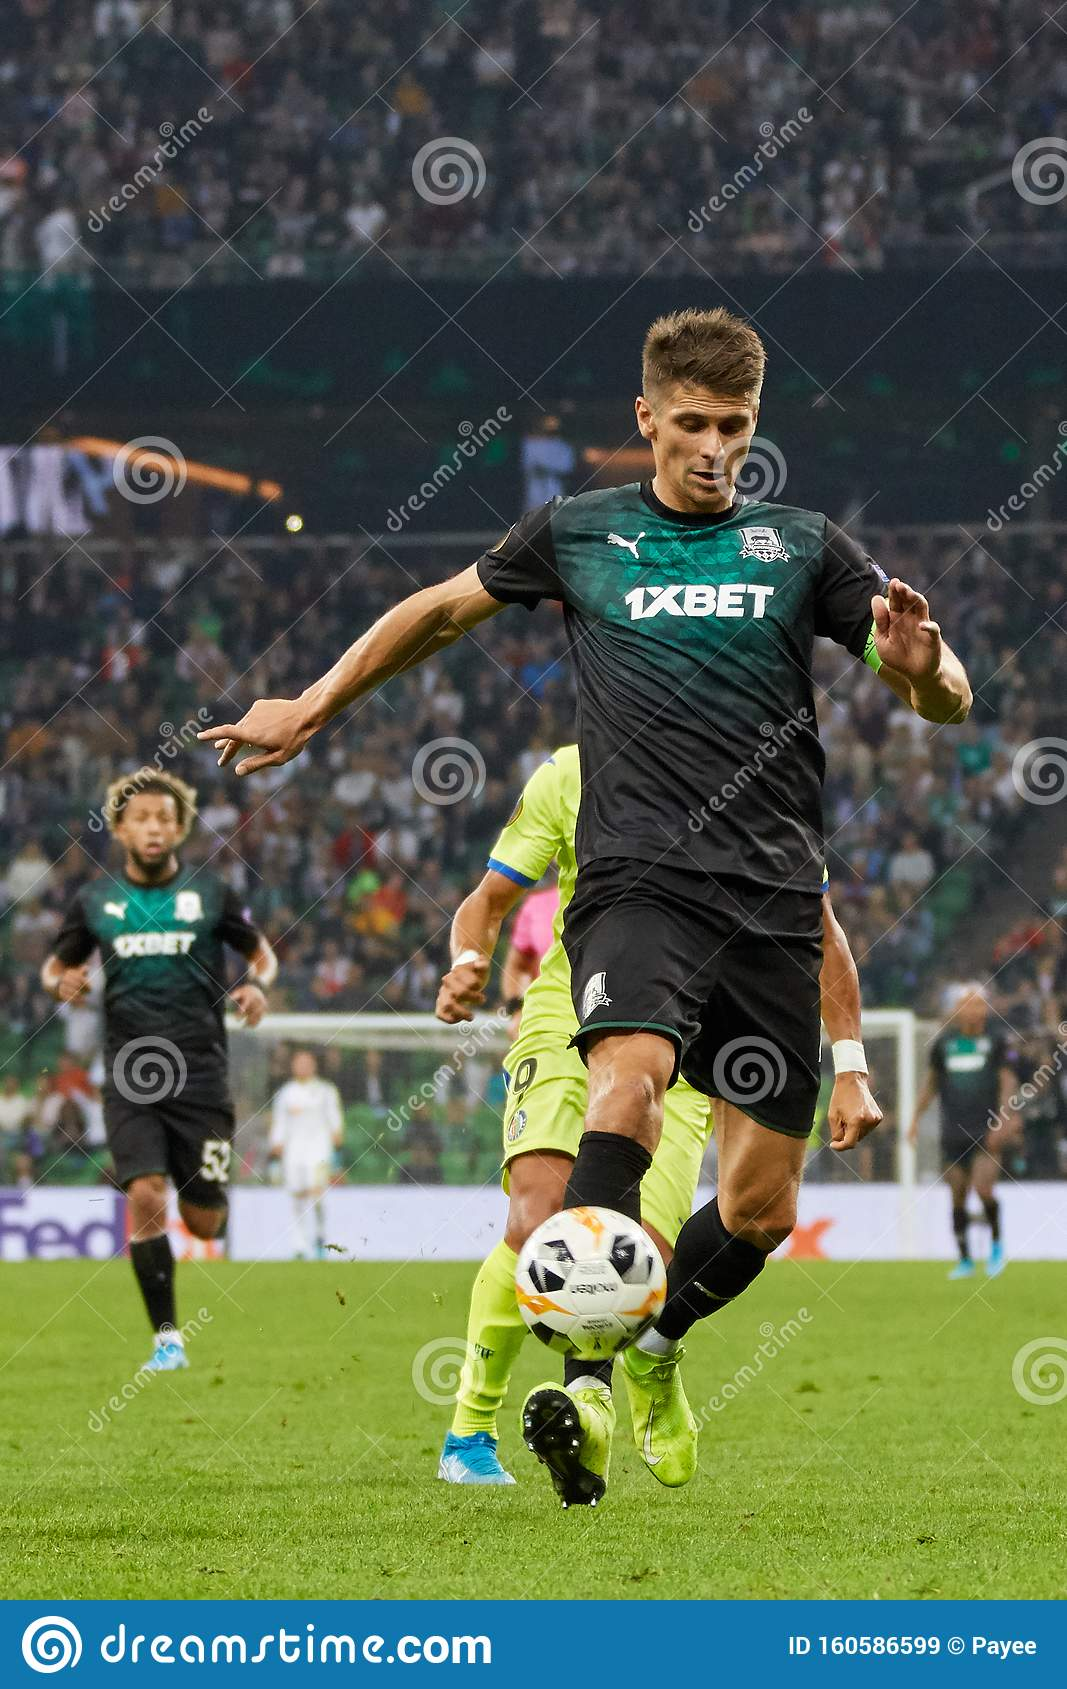 Aleksandr Martynovich Of Fc Krasnodar In Action Editorial Stock Image Image Of League Match 160586599